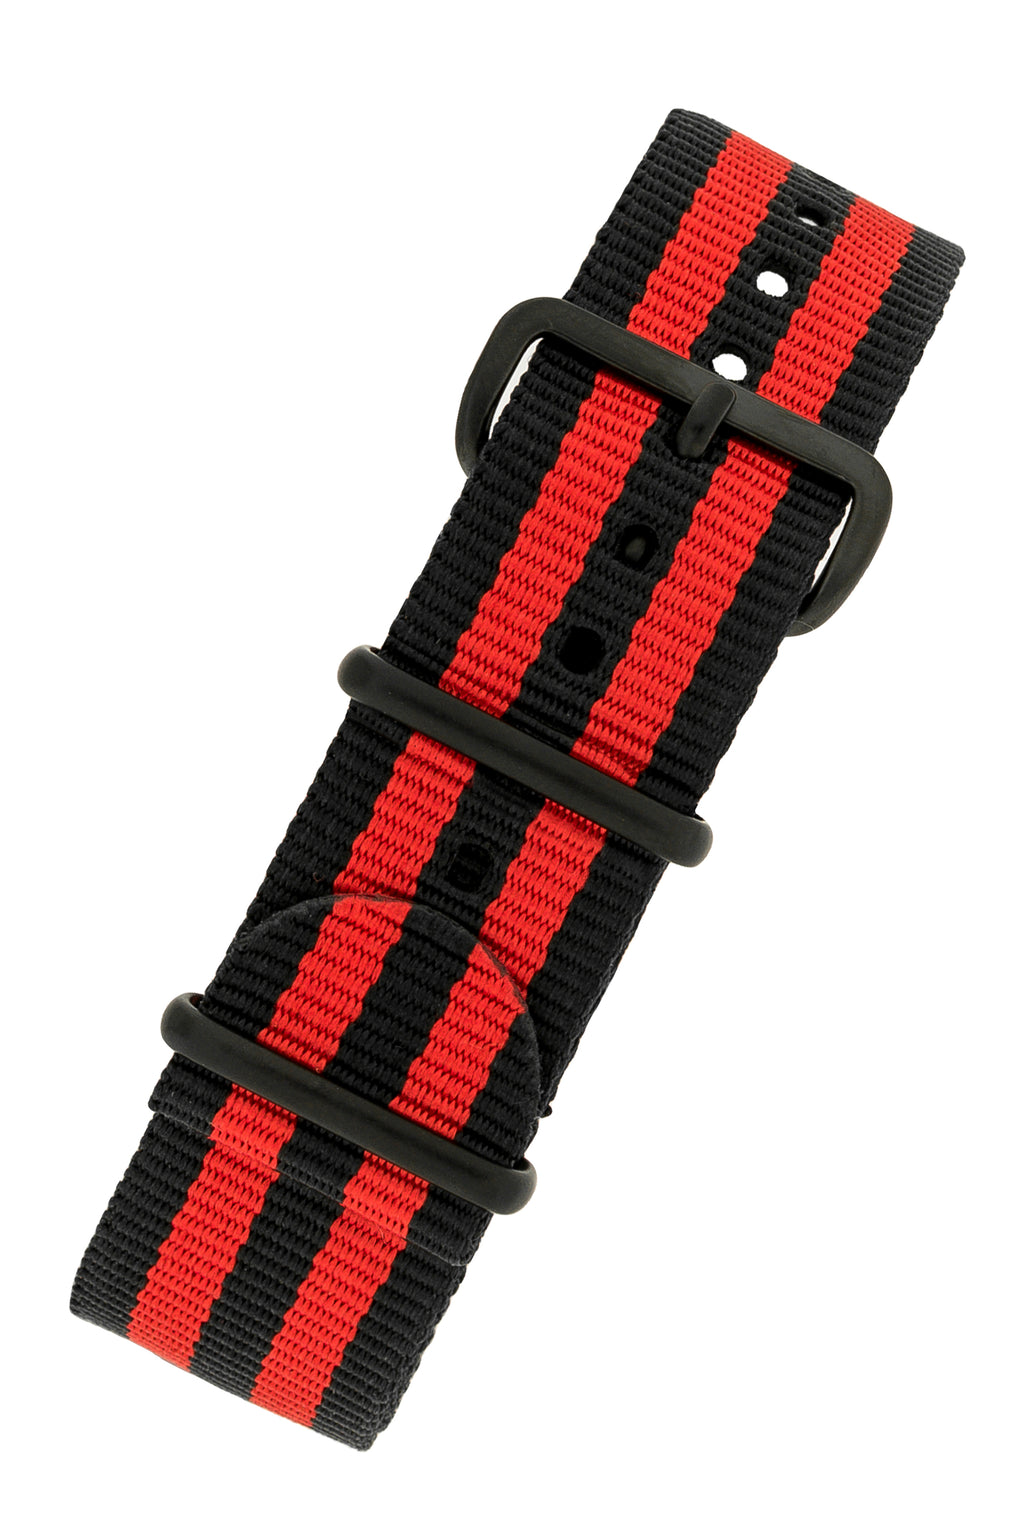 Nato Watch Straps in BLACK / RED Stripes with PVD Buckle & Keepers